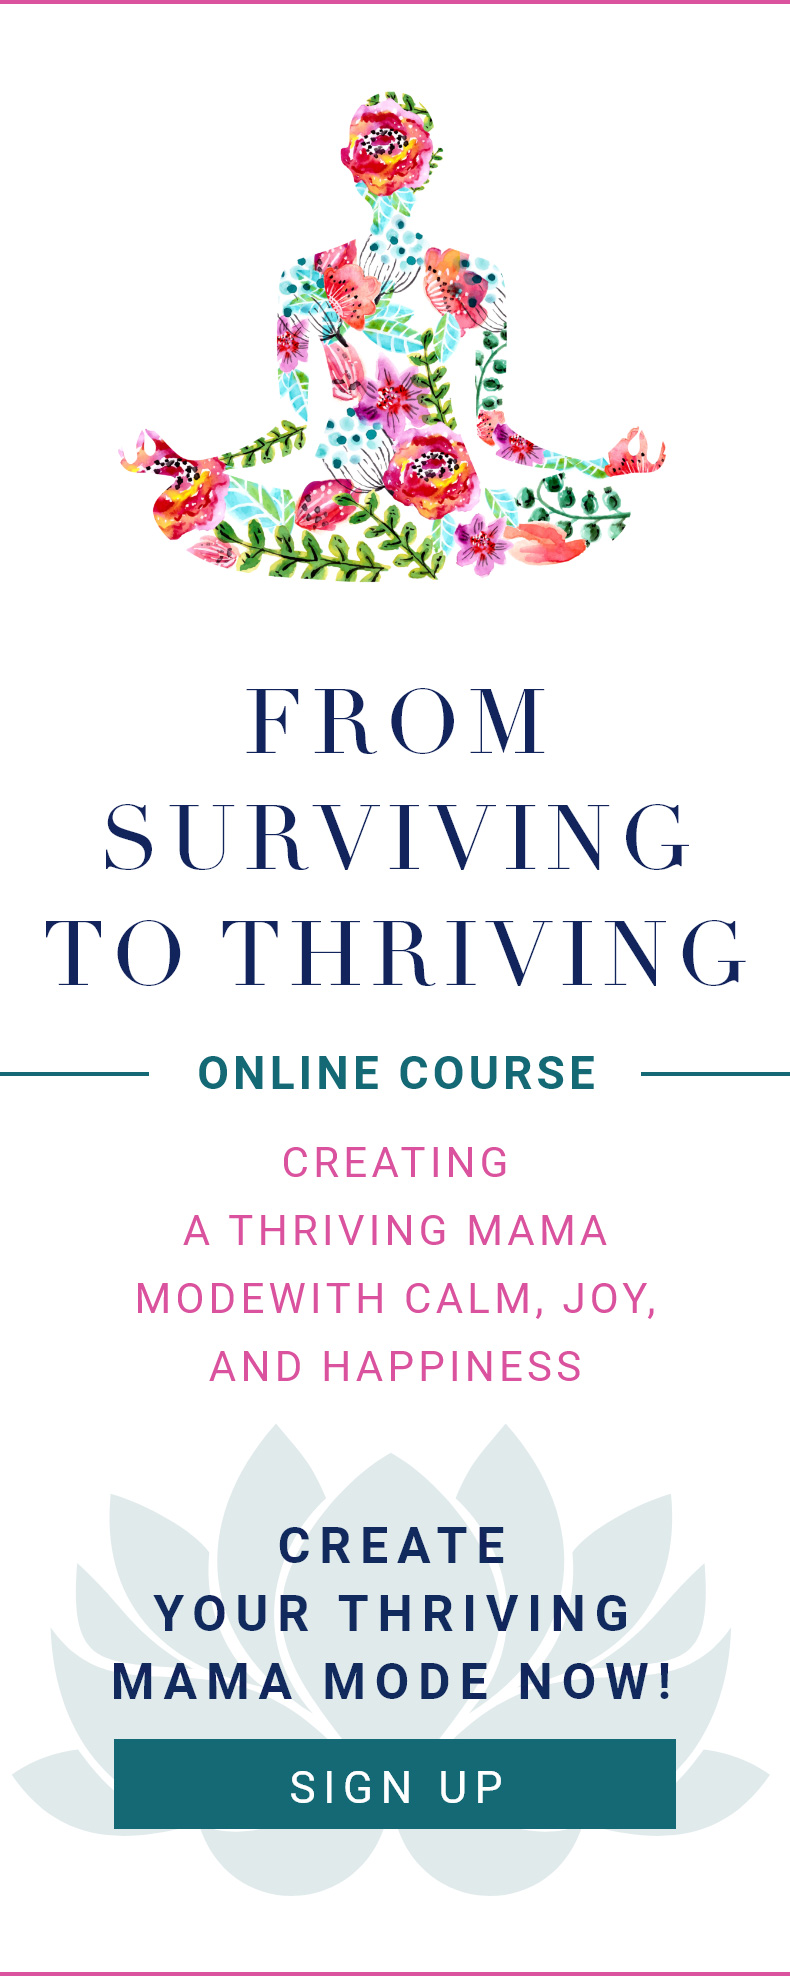 From Surviving To Thriving: Creating a Thriving Mama Mode With Calm, Joy, and Happiness, sign up for the online course now!